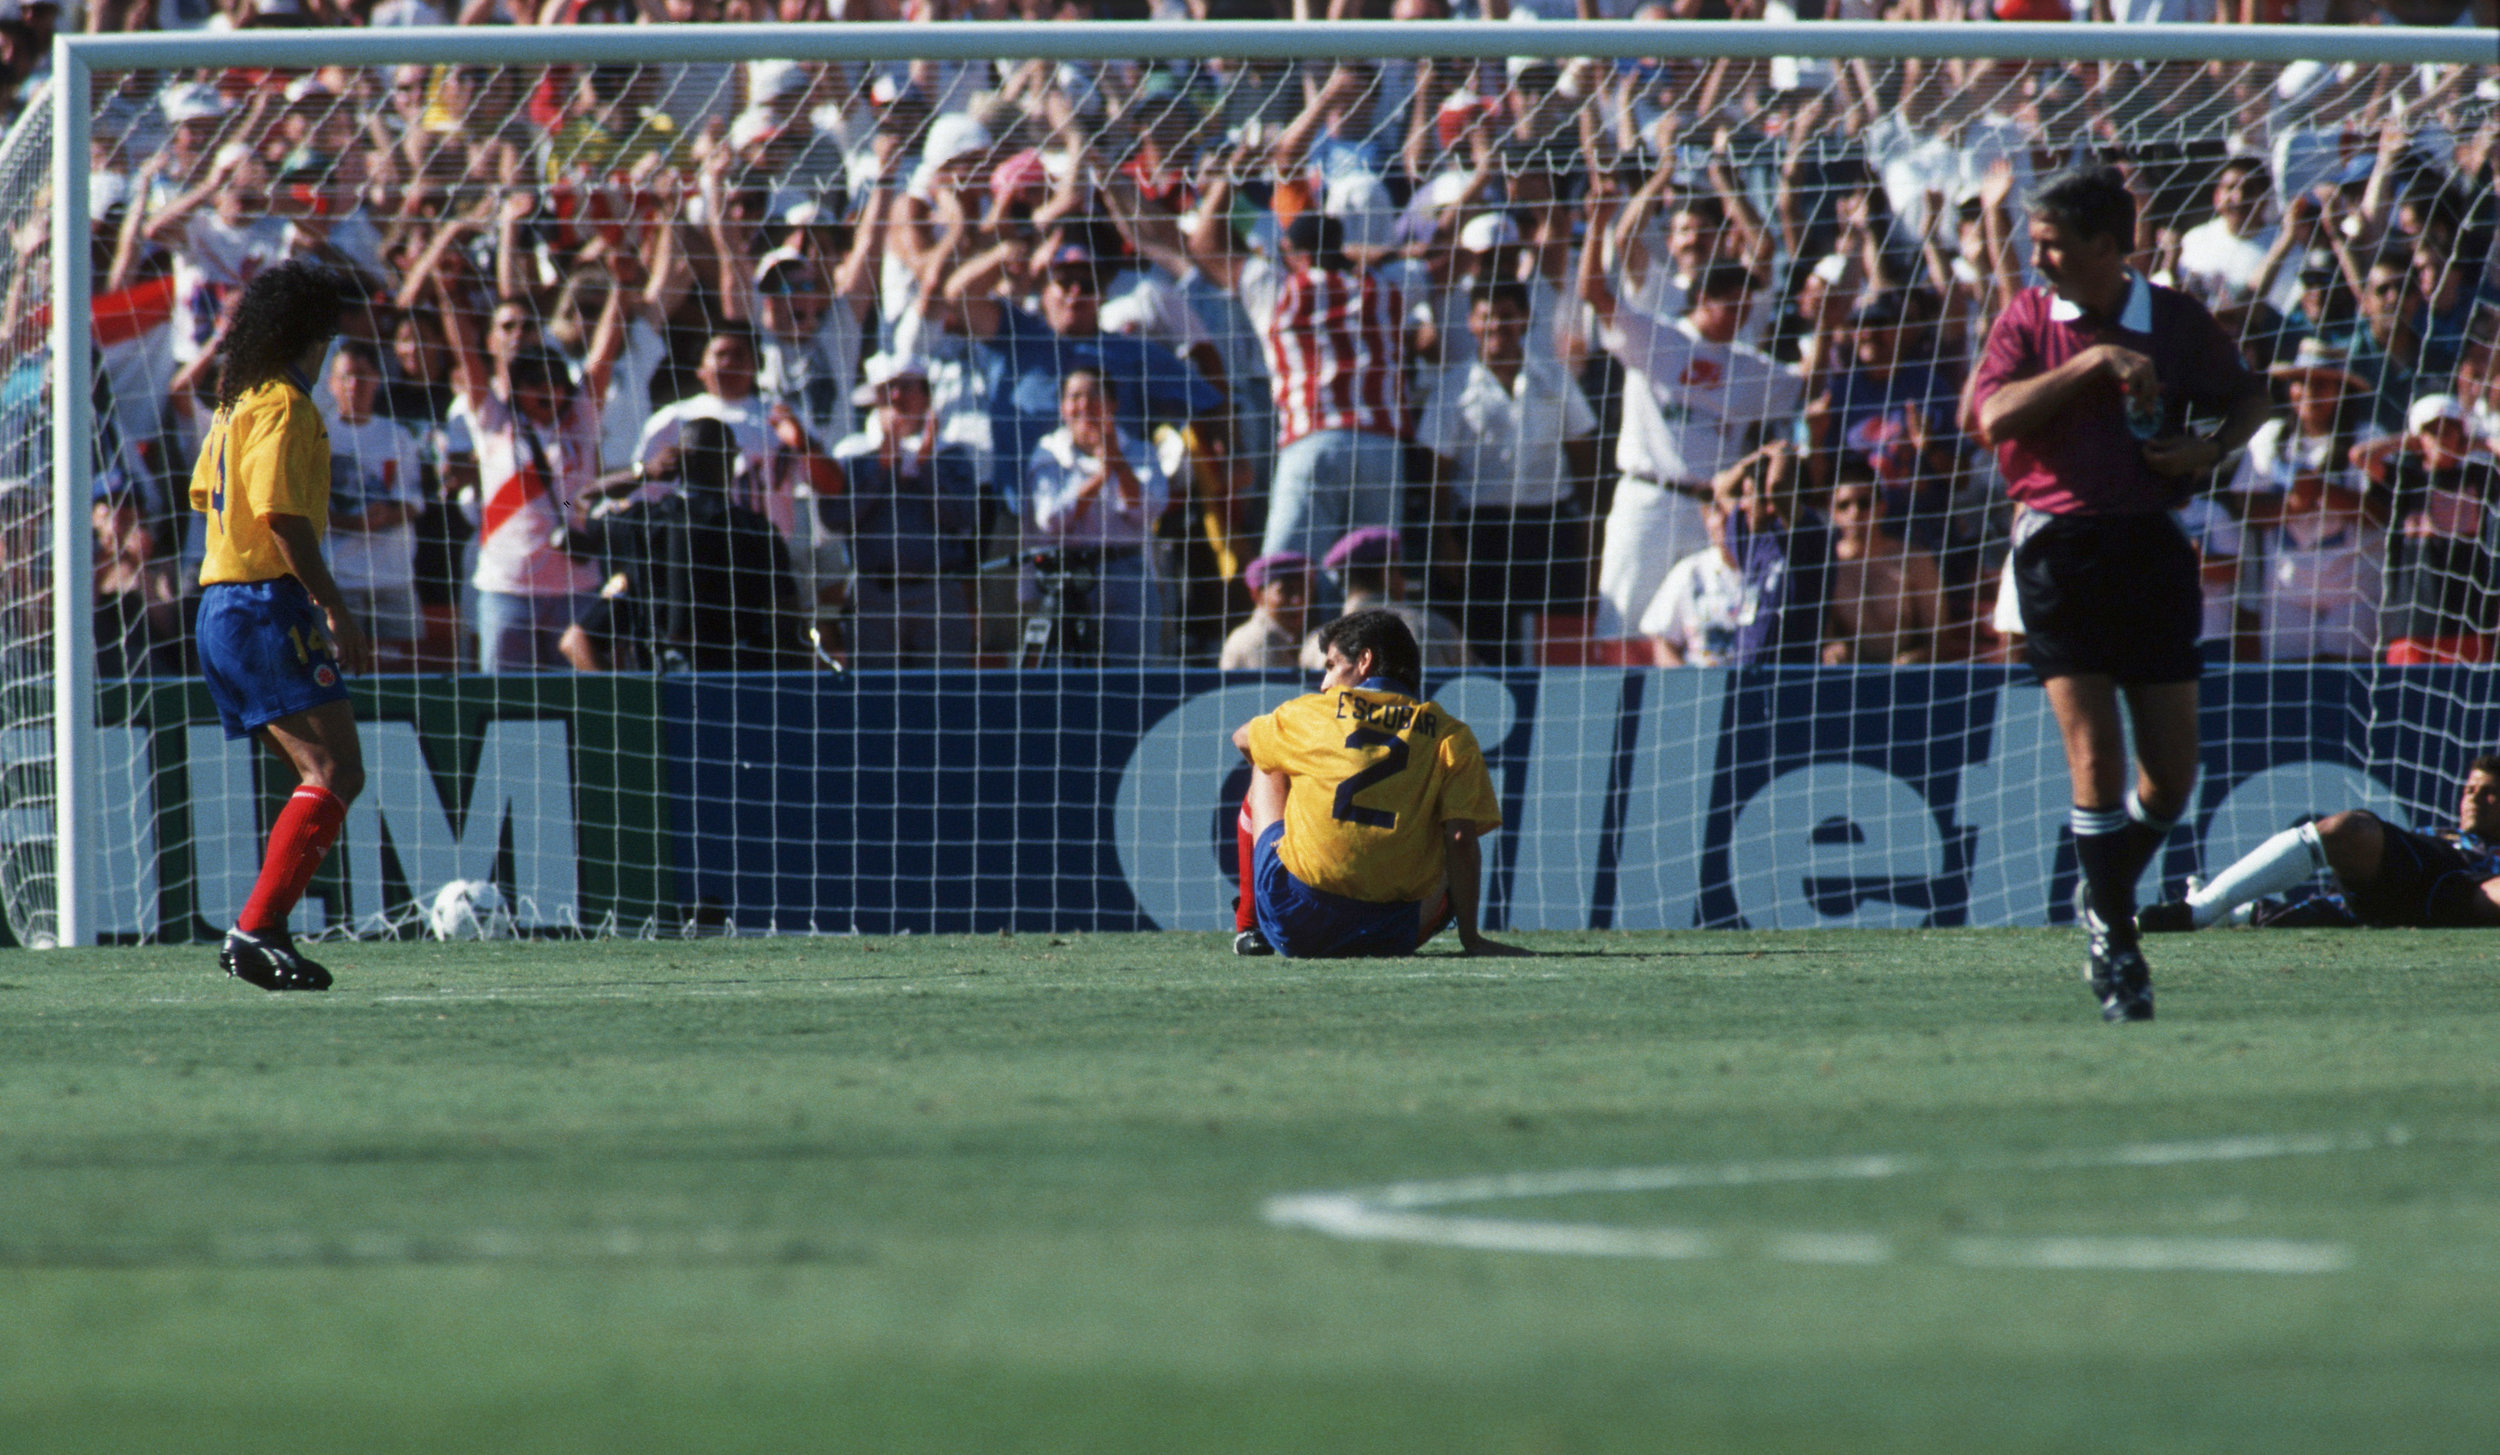 Andrés Escobar after scoring an own goal in Colombia's 1994 World Cup match against the U.S. Colombia lost the game, and Escobar was shot to death less than two weeks later by men who lost money on the match. Photo by Michael Kunkel/Bongarts/Getty Images